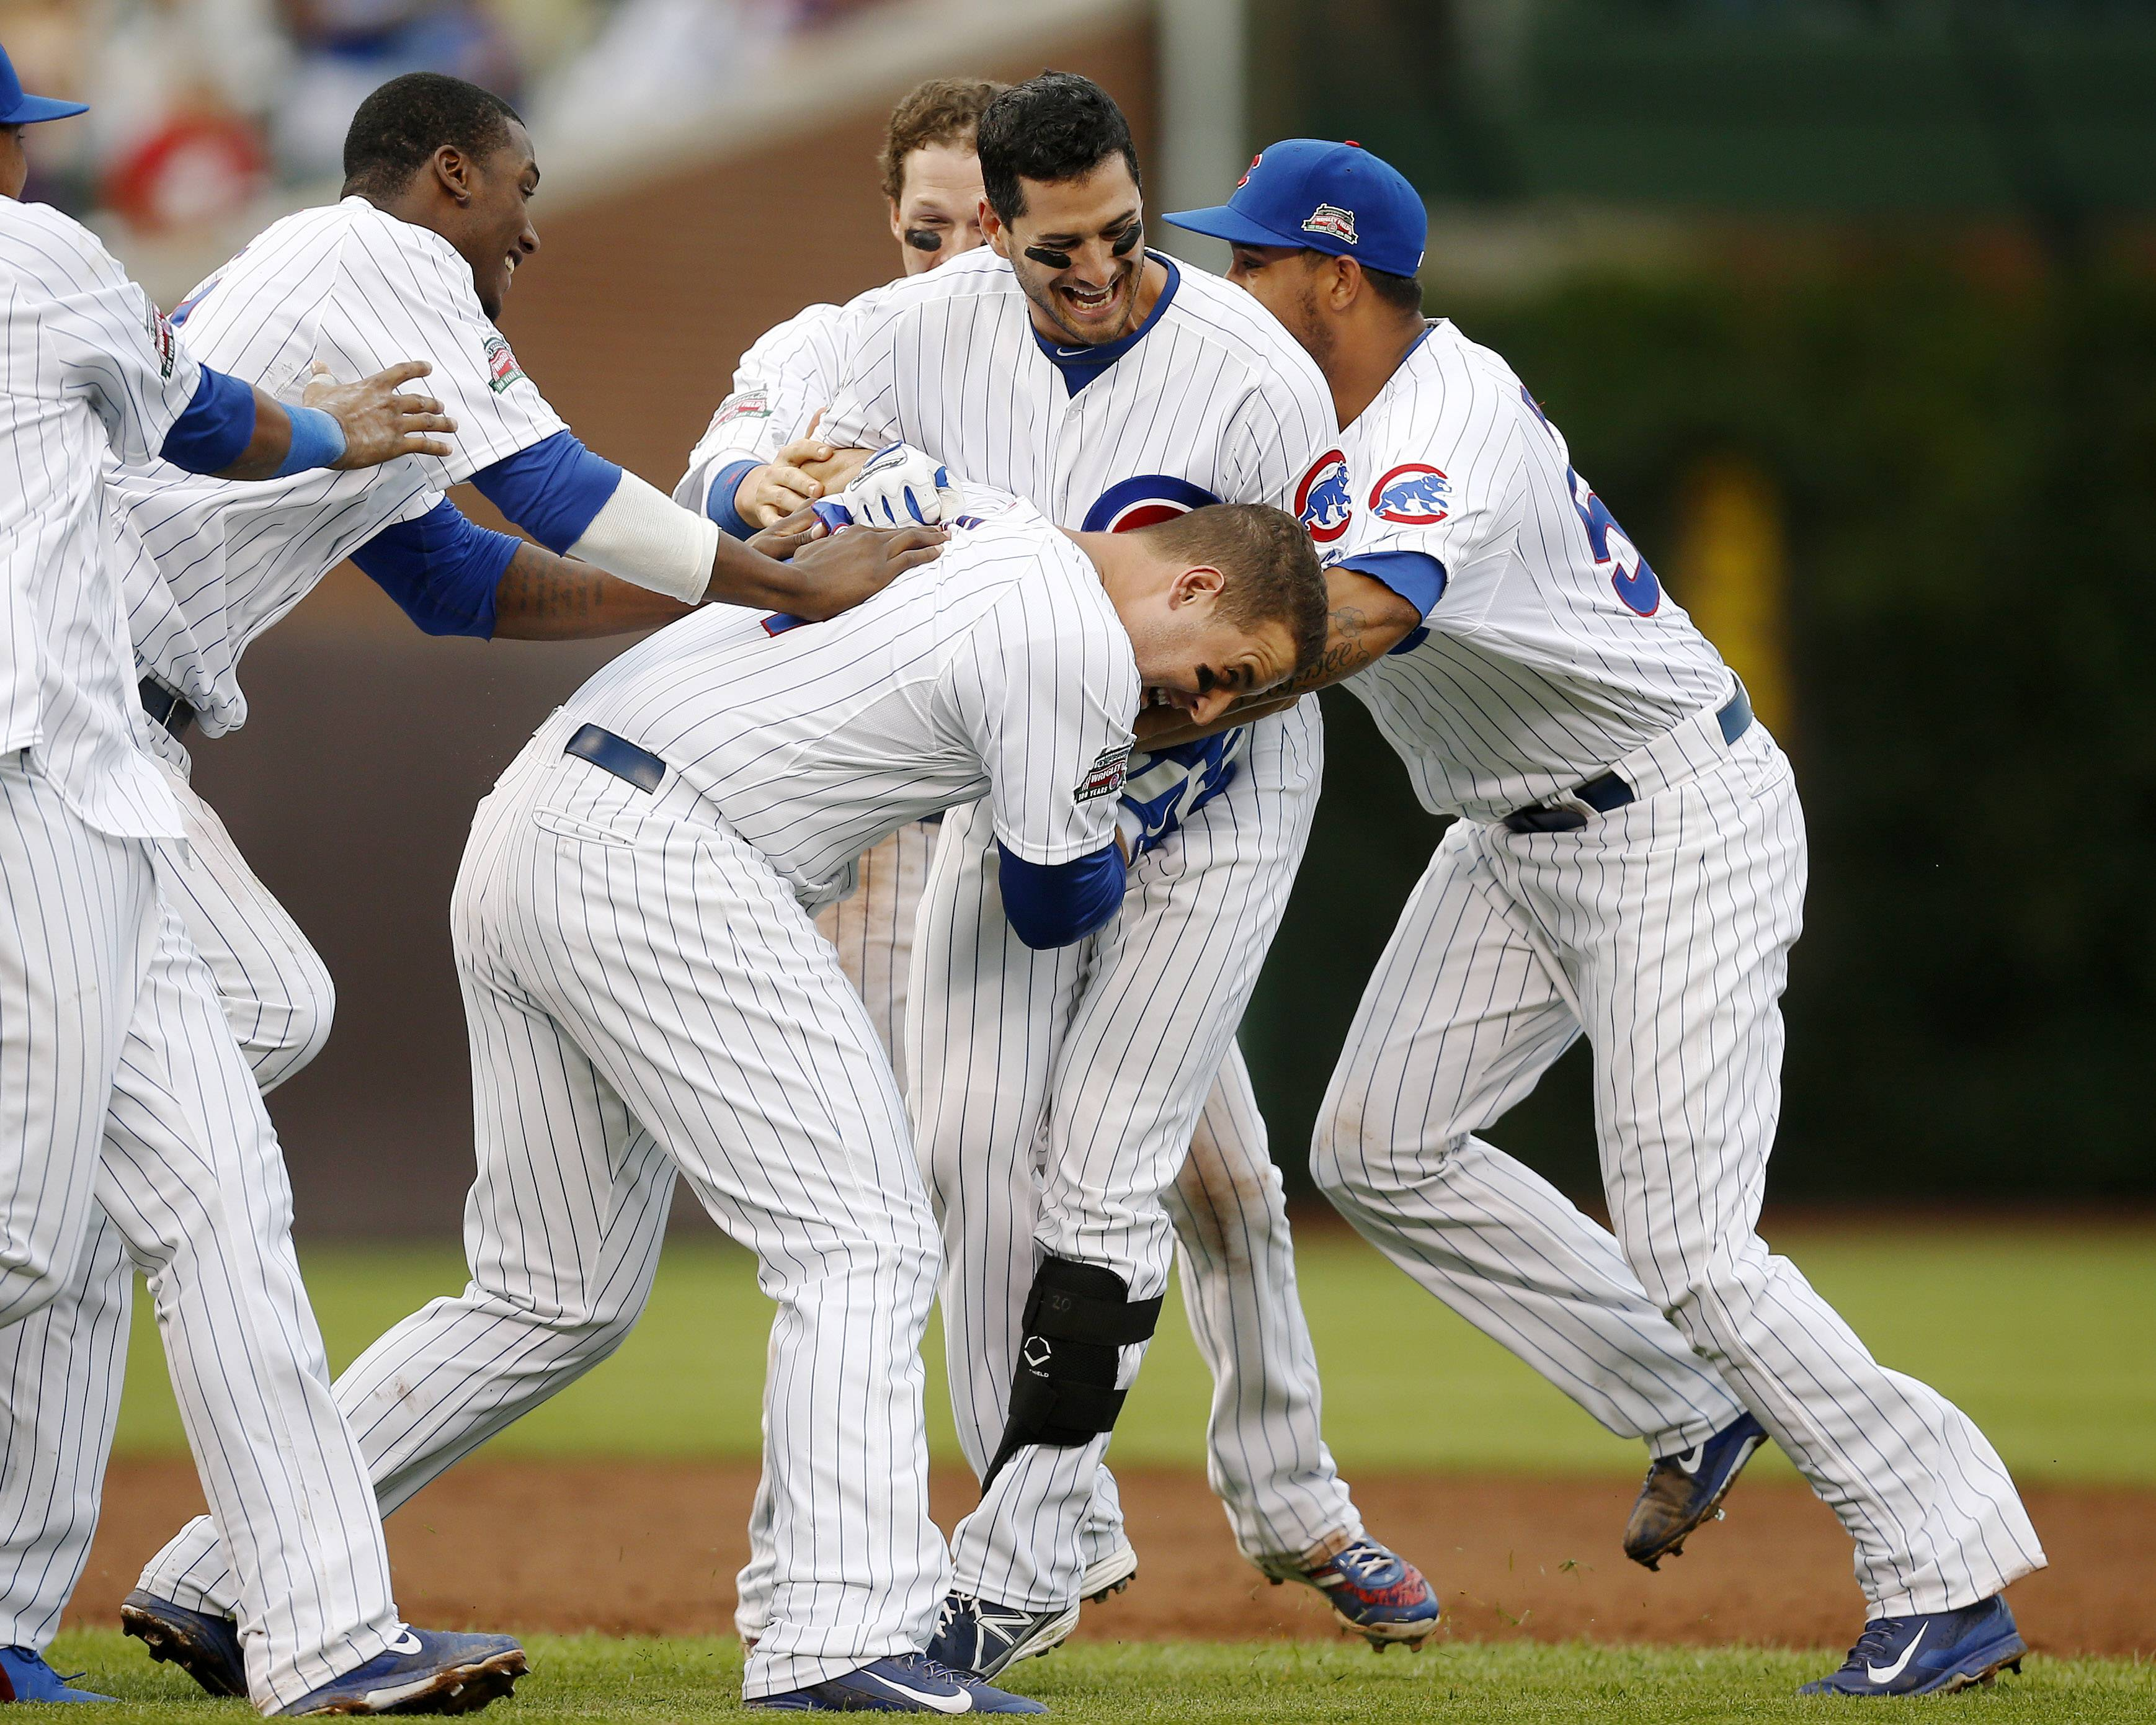 Cubs players pile onto Justin Ruggiano, center, after Ruggiano hit a game-winning RBI single in the ninth inning against the Atlanta Braves to earn a 5-4 victory.